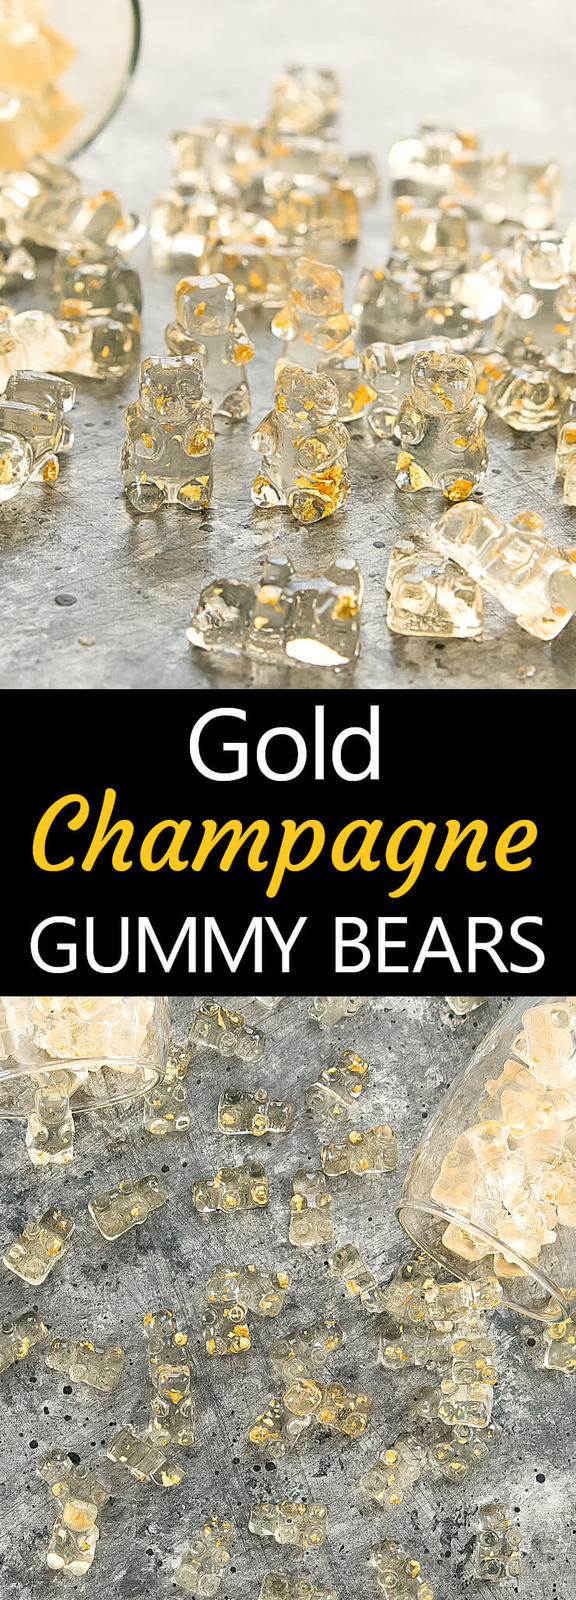 Gold Champagne Gummy Bears. Homemade champagne flavored gummy bears with edible gold flakes. Perfect for a party or for gifting.